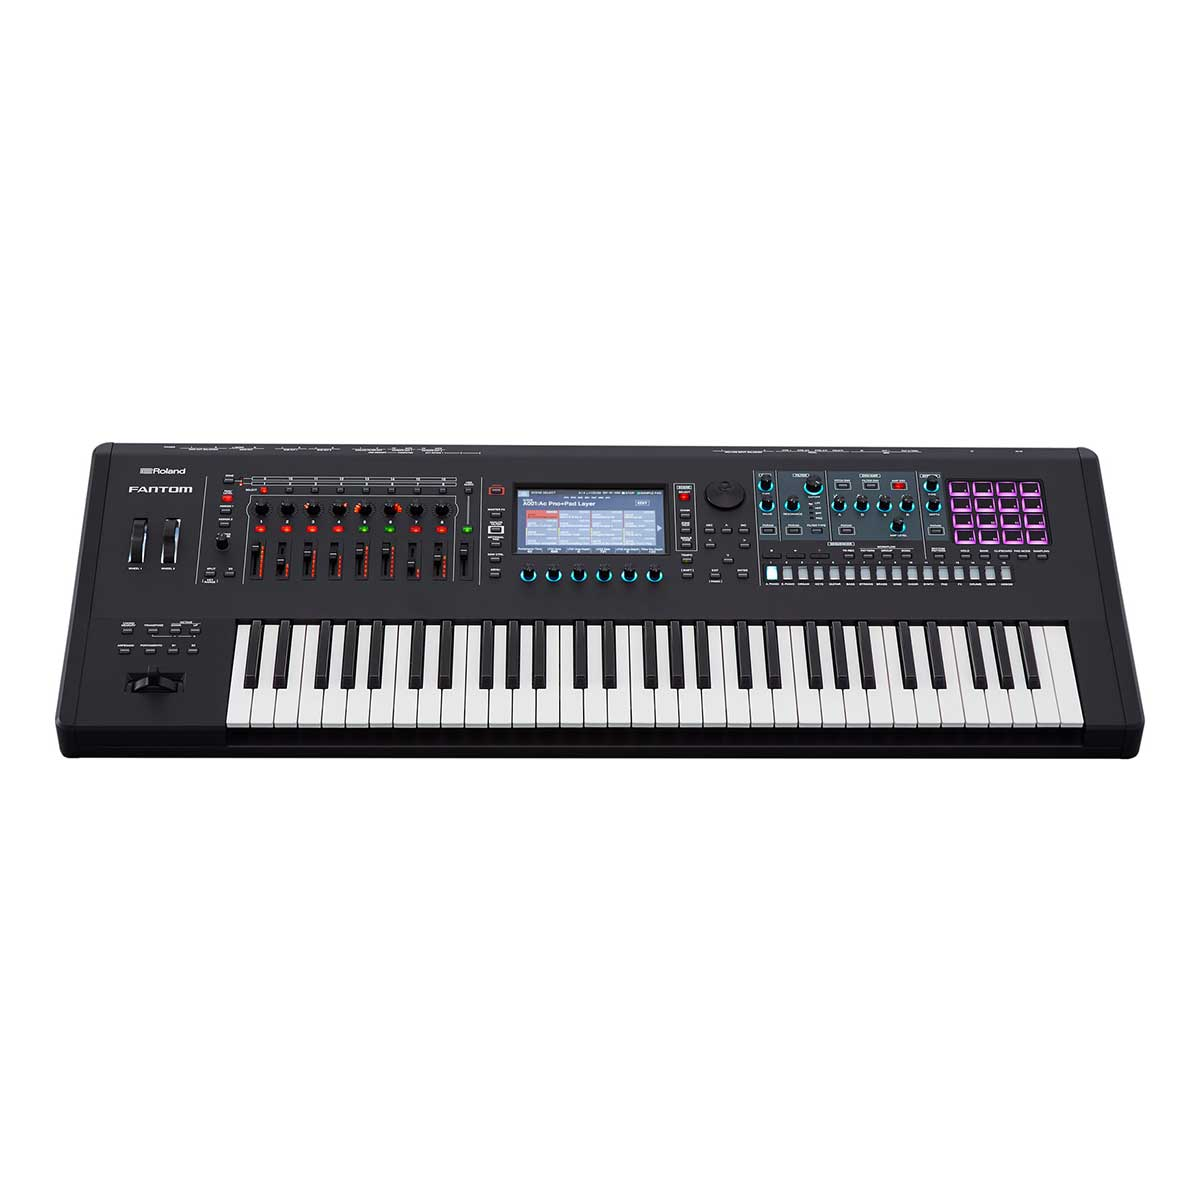 Roland Fantom 6 semi-weighted Keyboard Synthesizer Workstation with 61 keys and aftertouch